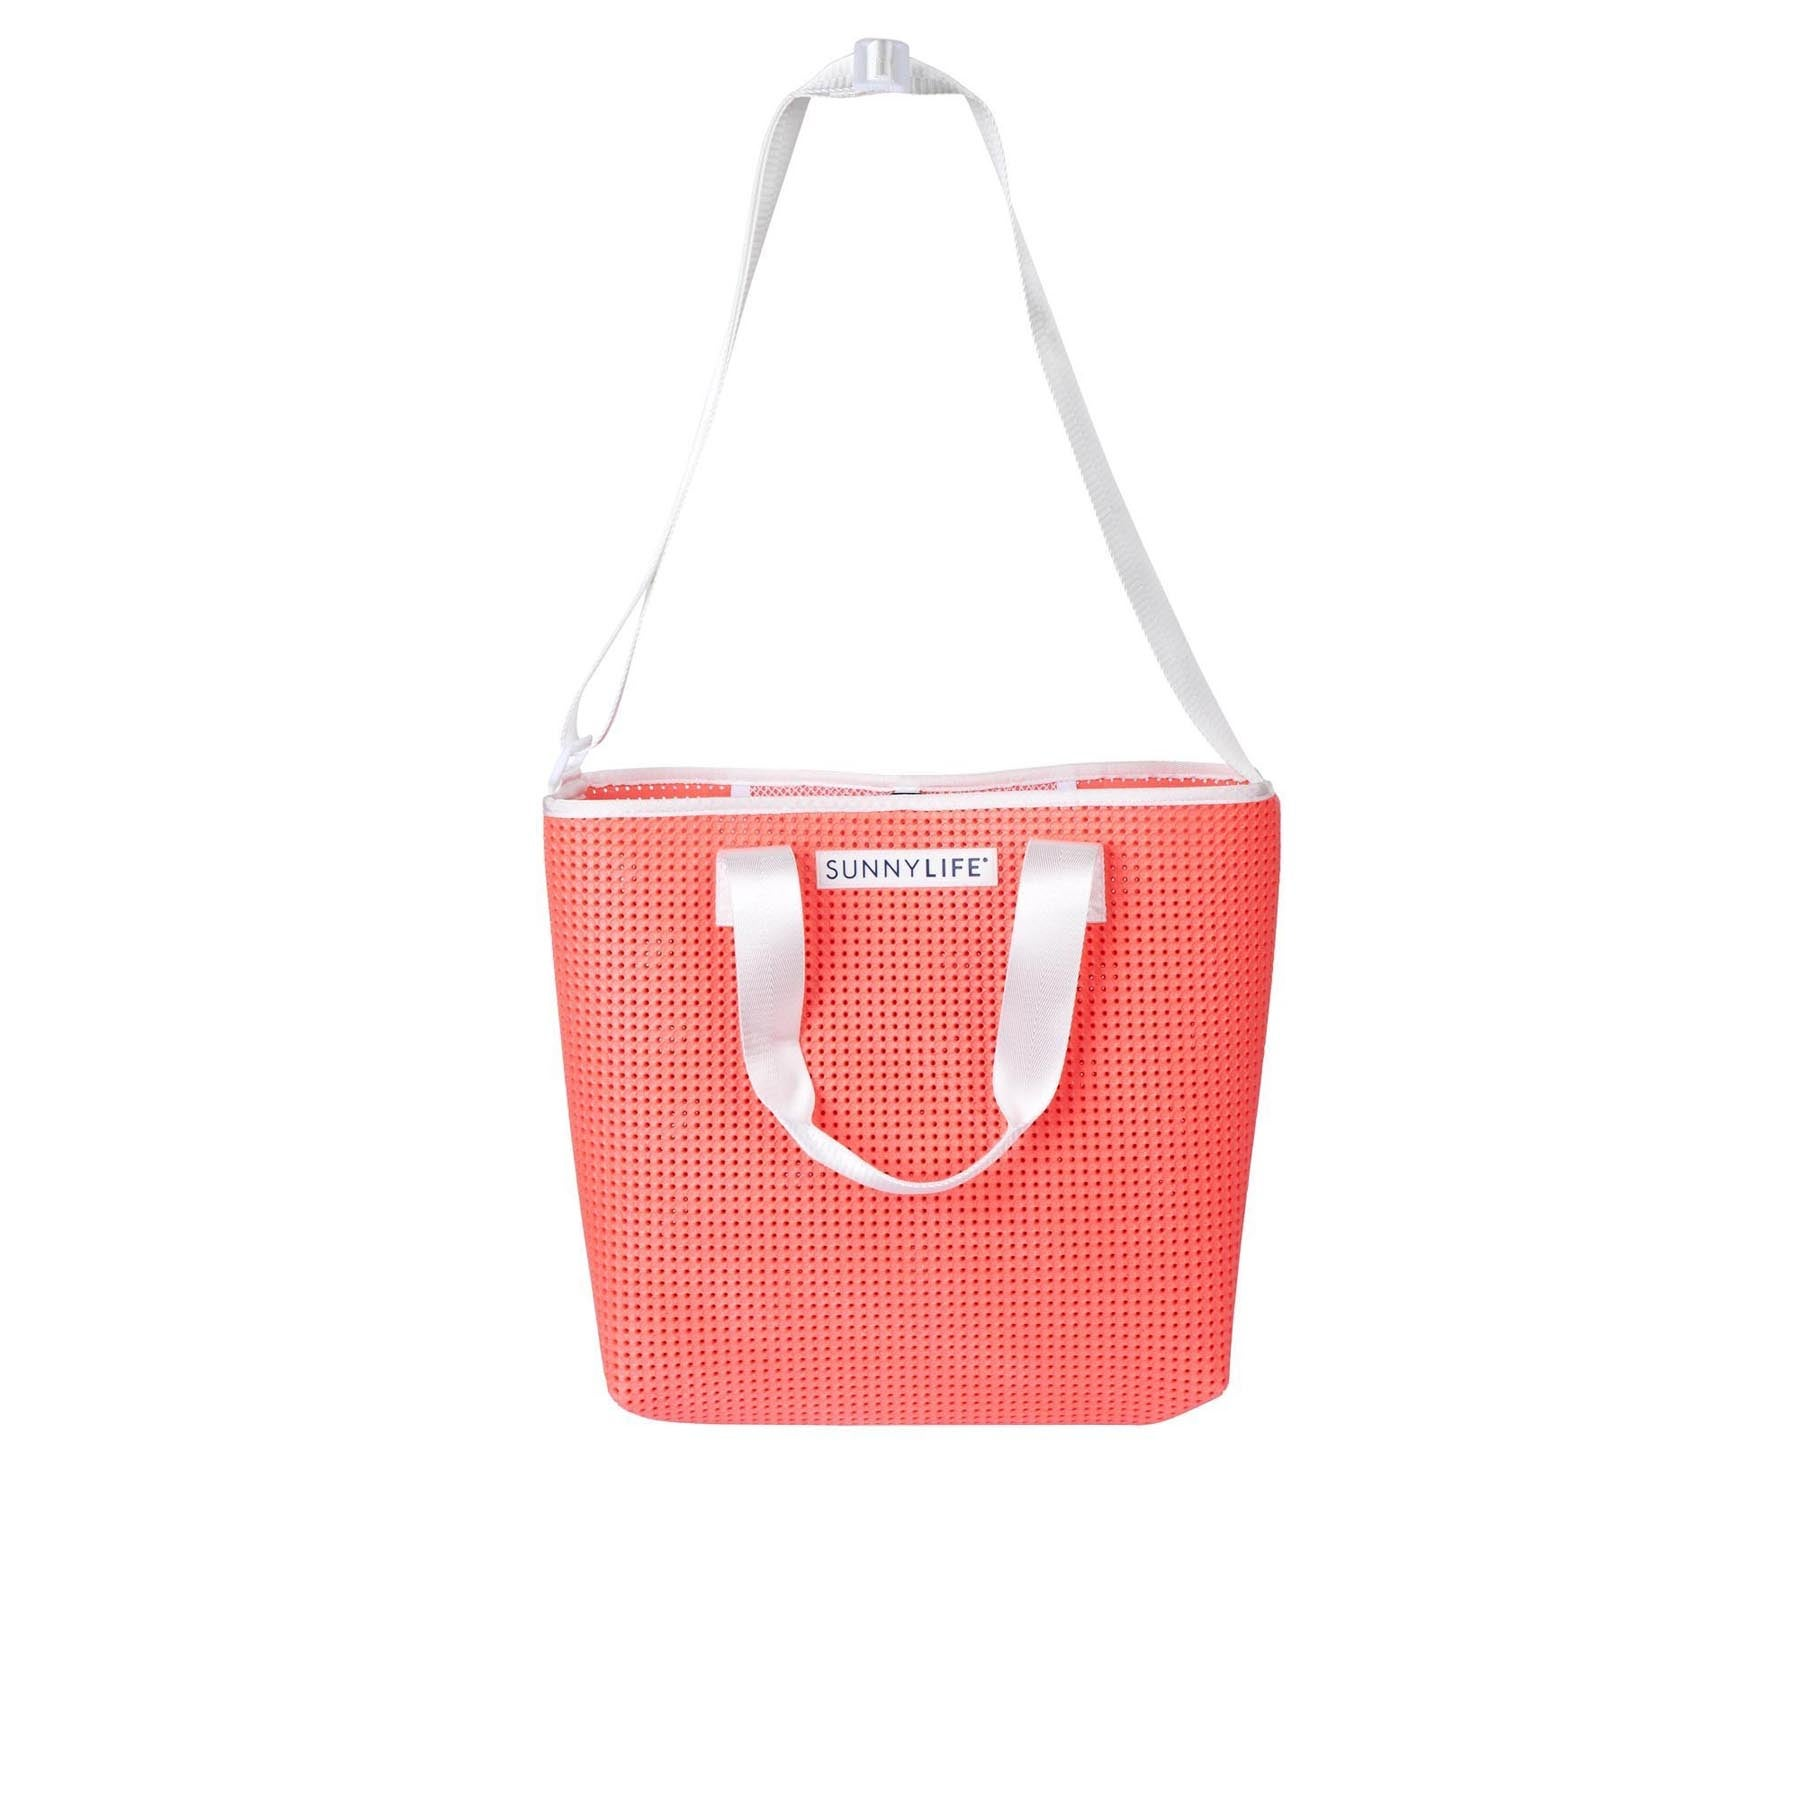 Sunnylife Refresh Tote Beach Bag - Neon Coral